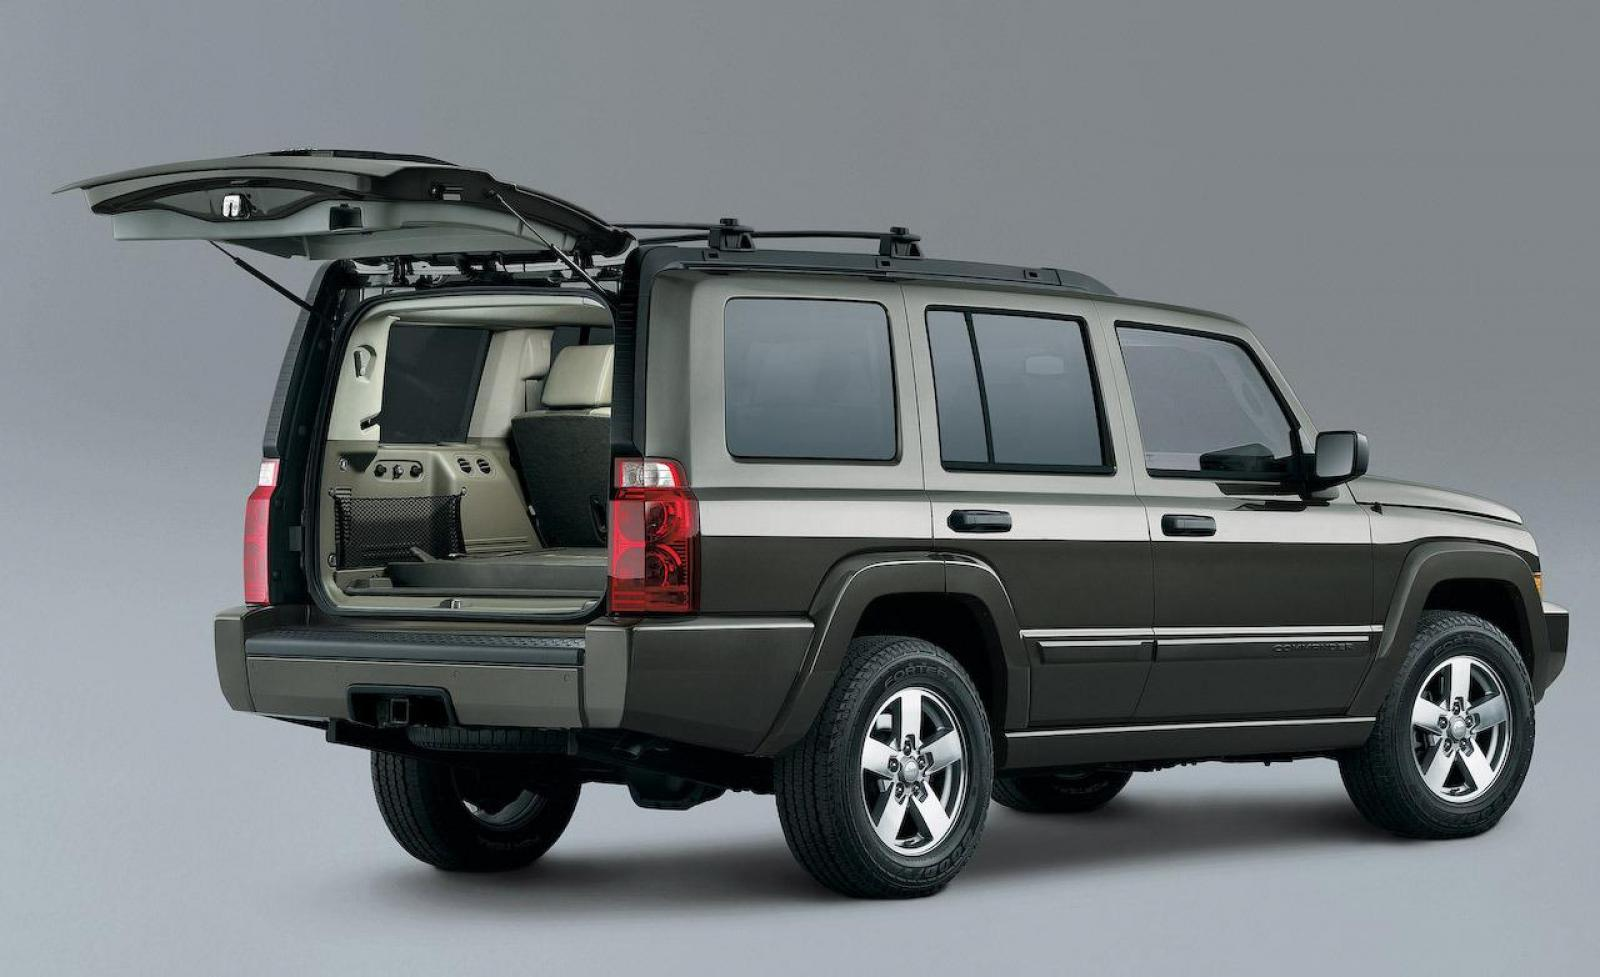 2009 jeep commander information and photos zombiedrive. Black Bedroom Furniture Sets. Home Design Ideas